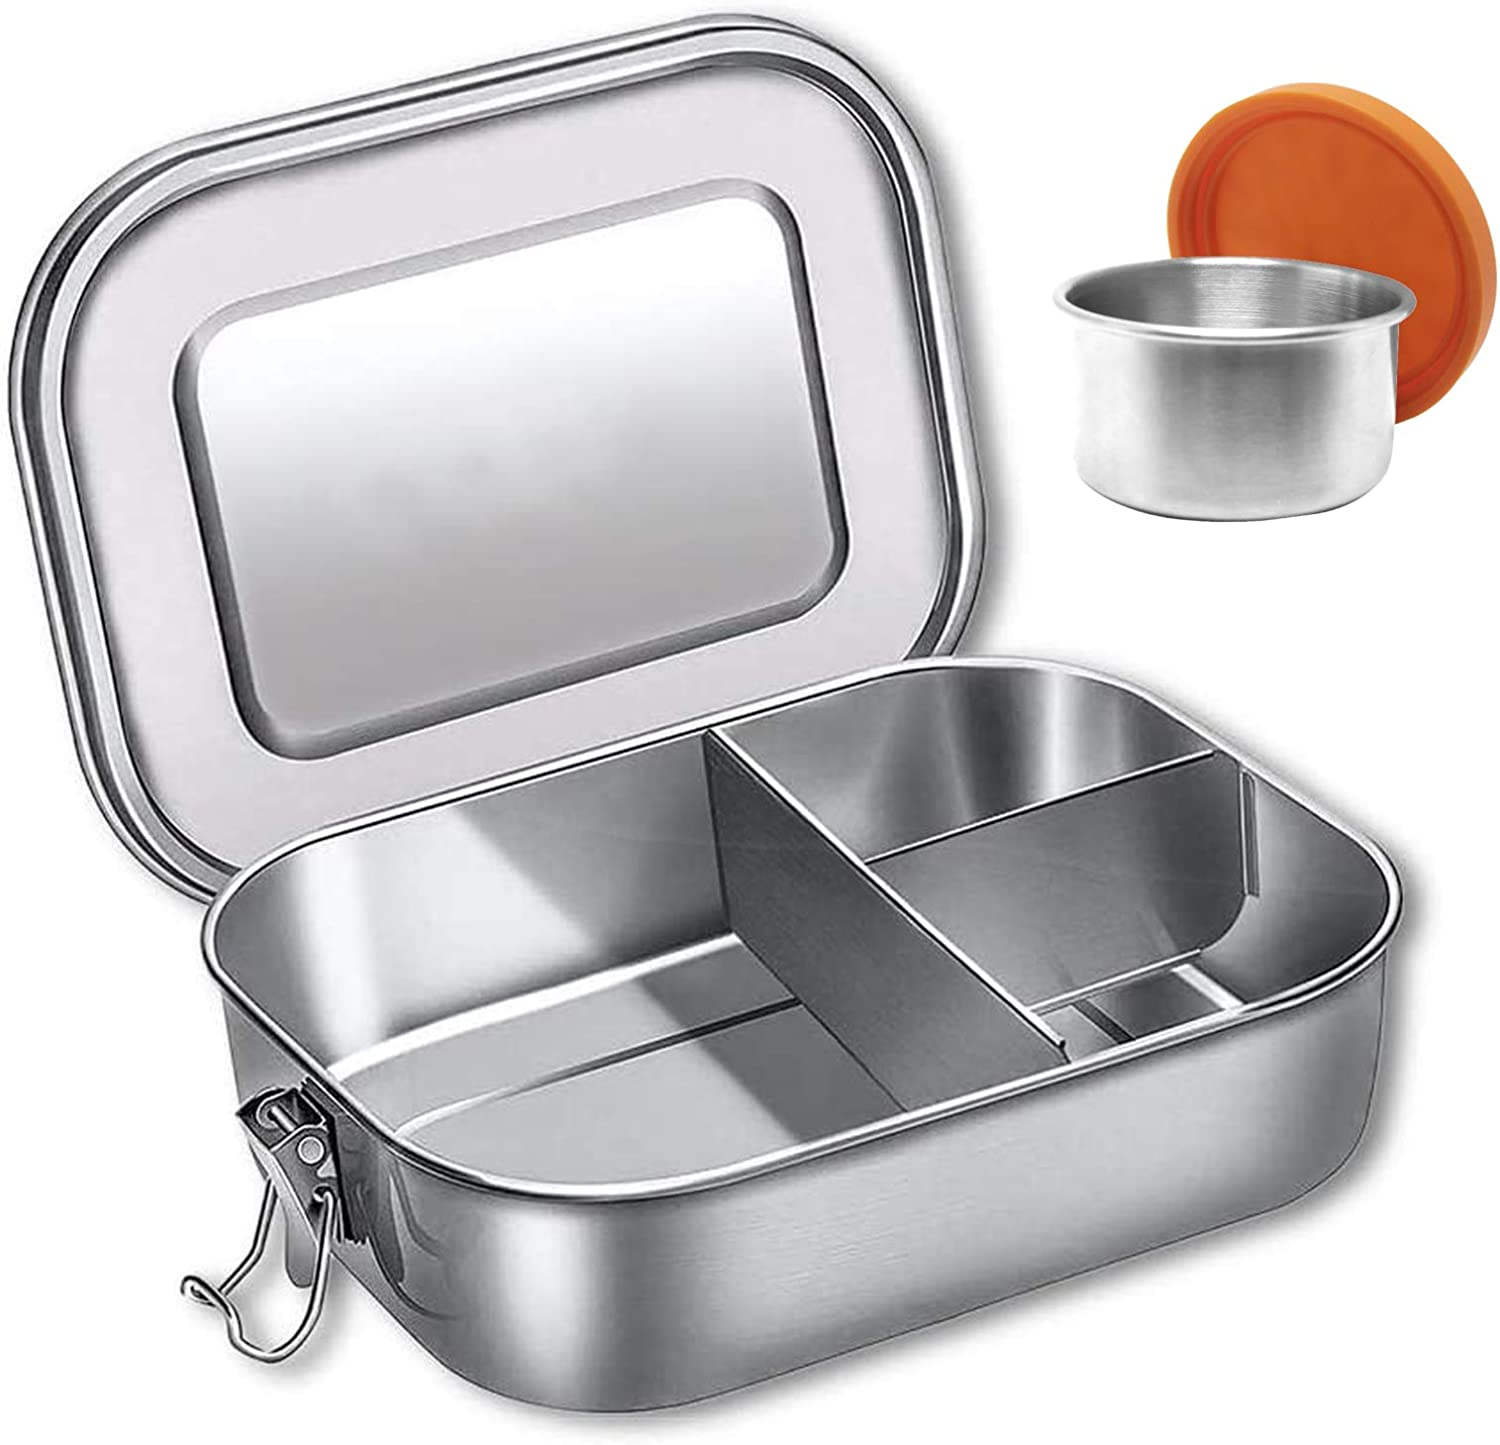 Stainless Steel Bento Box, 1400ML 3 Divided Compartments Kids Or Adult Large Lunch Container Foods Snack Packer with Dip Condiment Box for Fruits, Vegetables and Sandwich, Salad